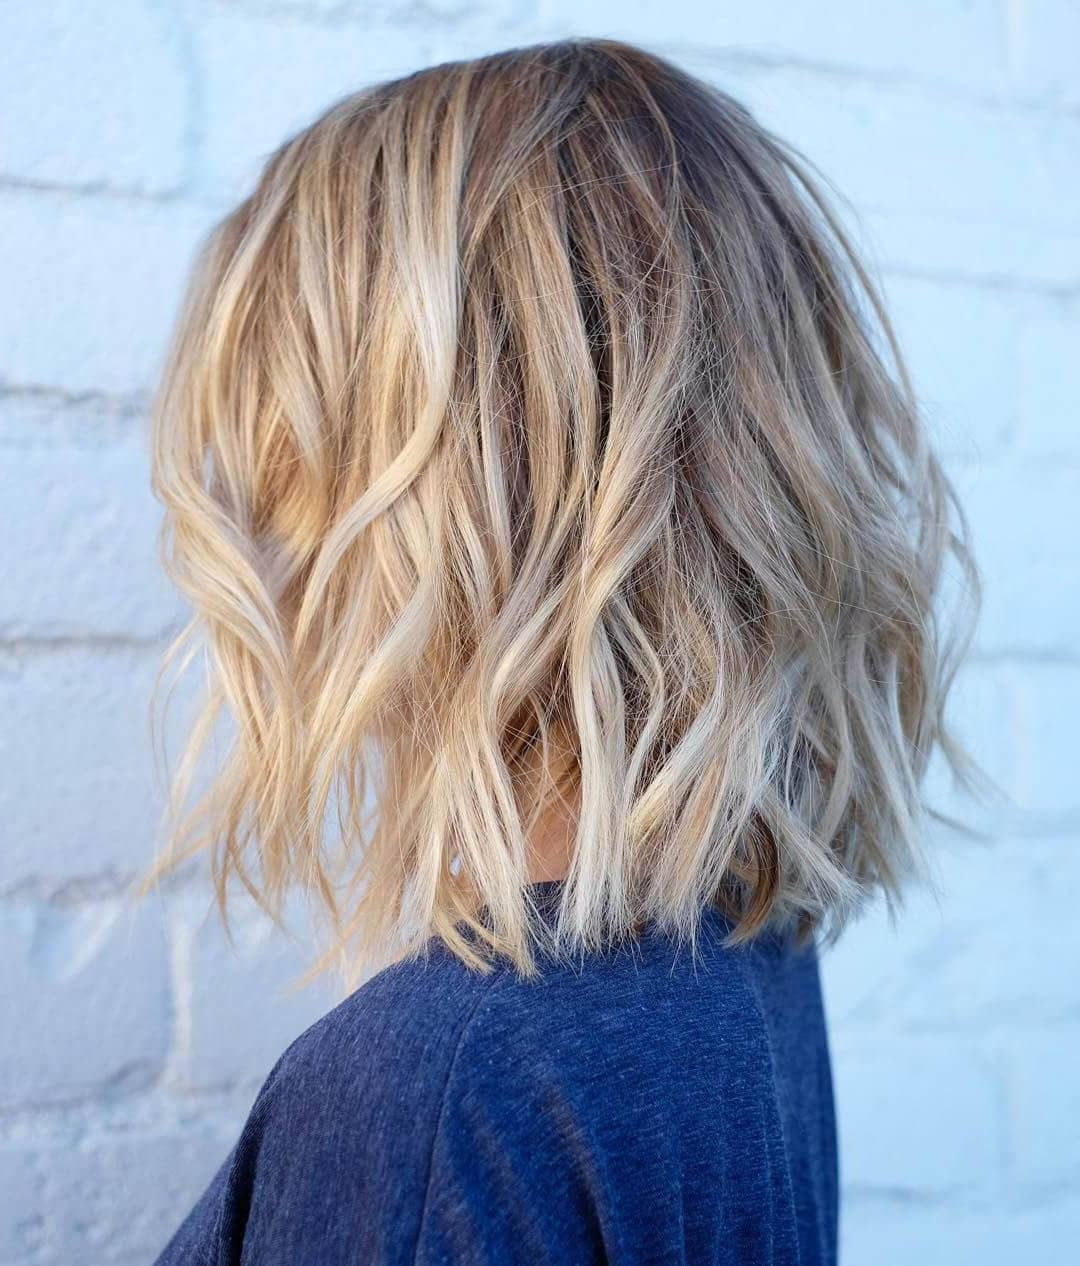 50 Fresh Short Blonde Hair Ideas To Update Your Style In 2018 Inside Choppy Golden Blonde Balayage Bob Hairstyles (View 9 of 20)